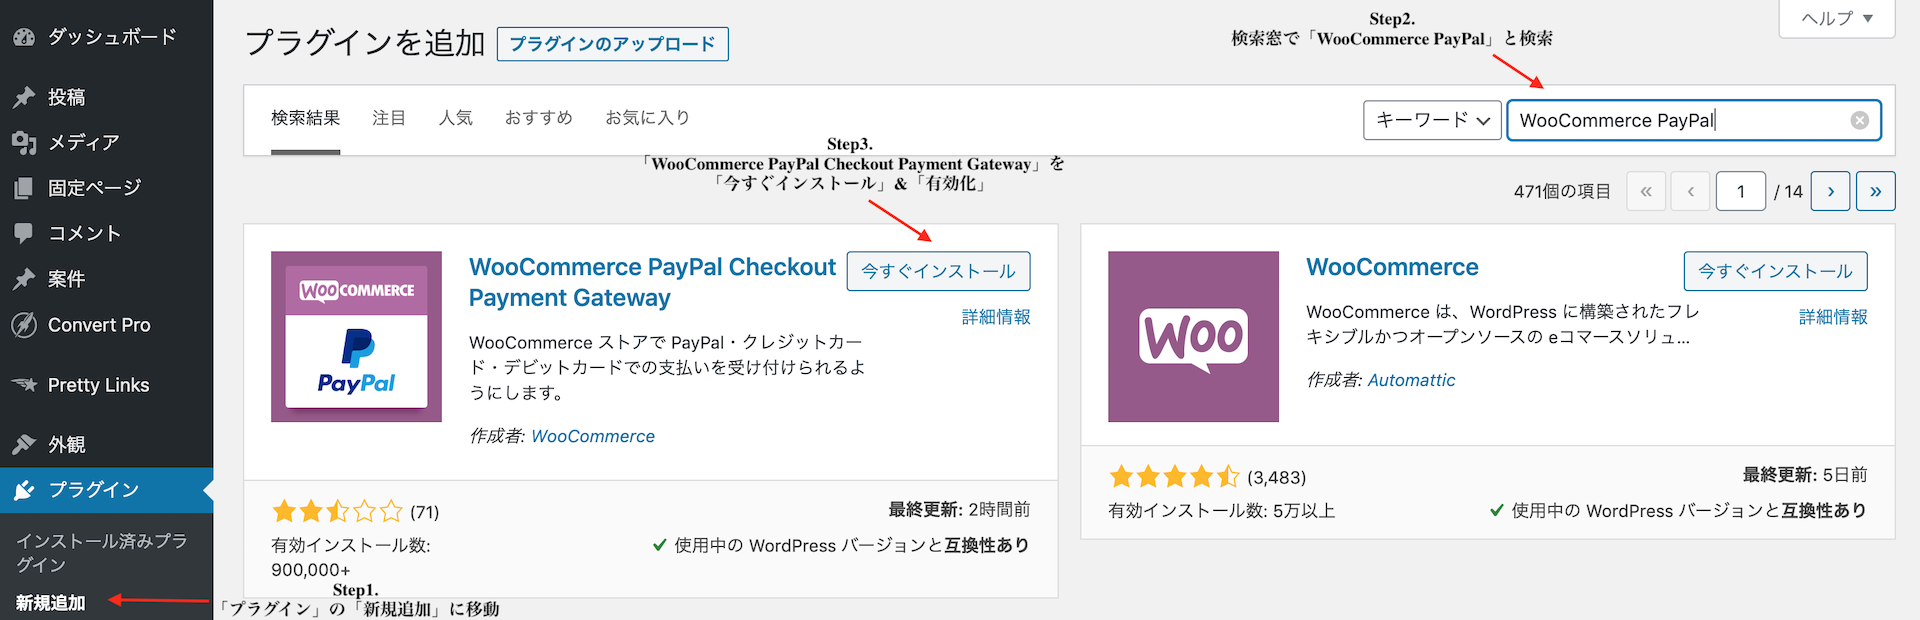 WooCommerce PayPal Checkout Payment Gatewayプラグインのインストール